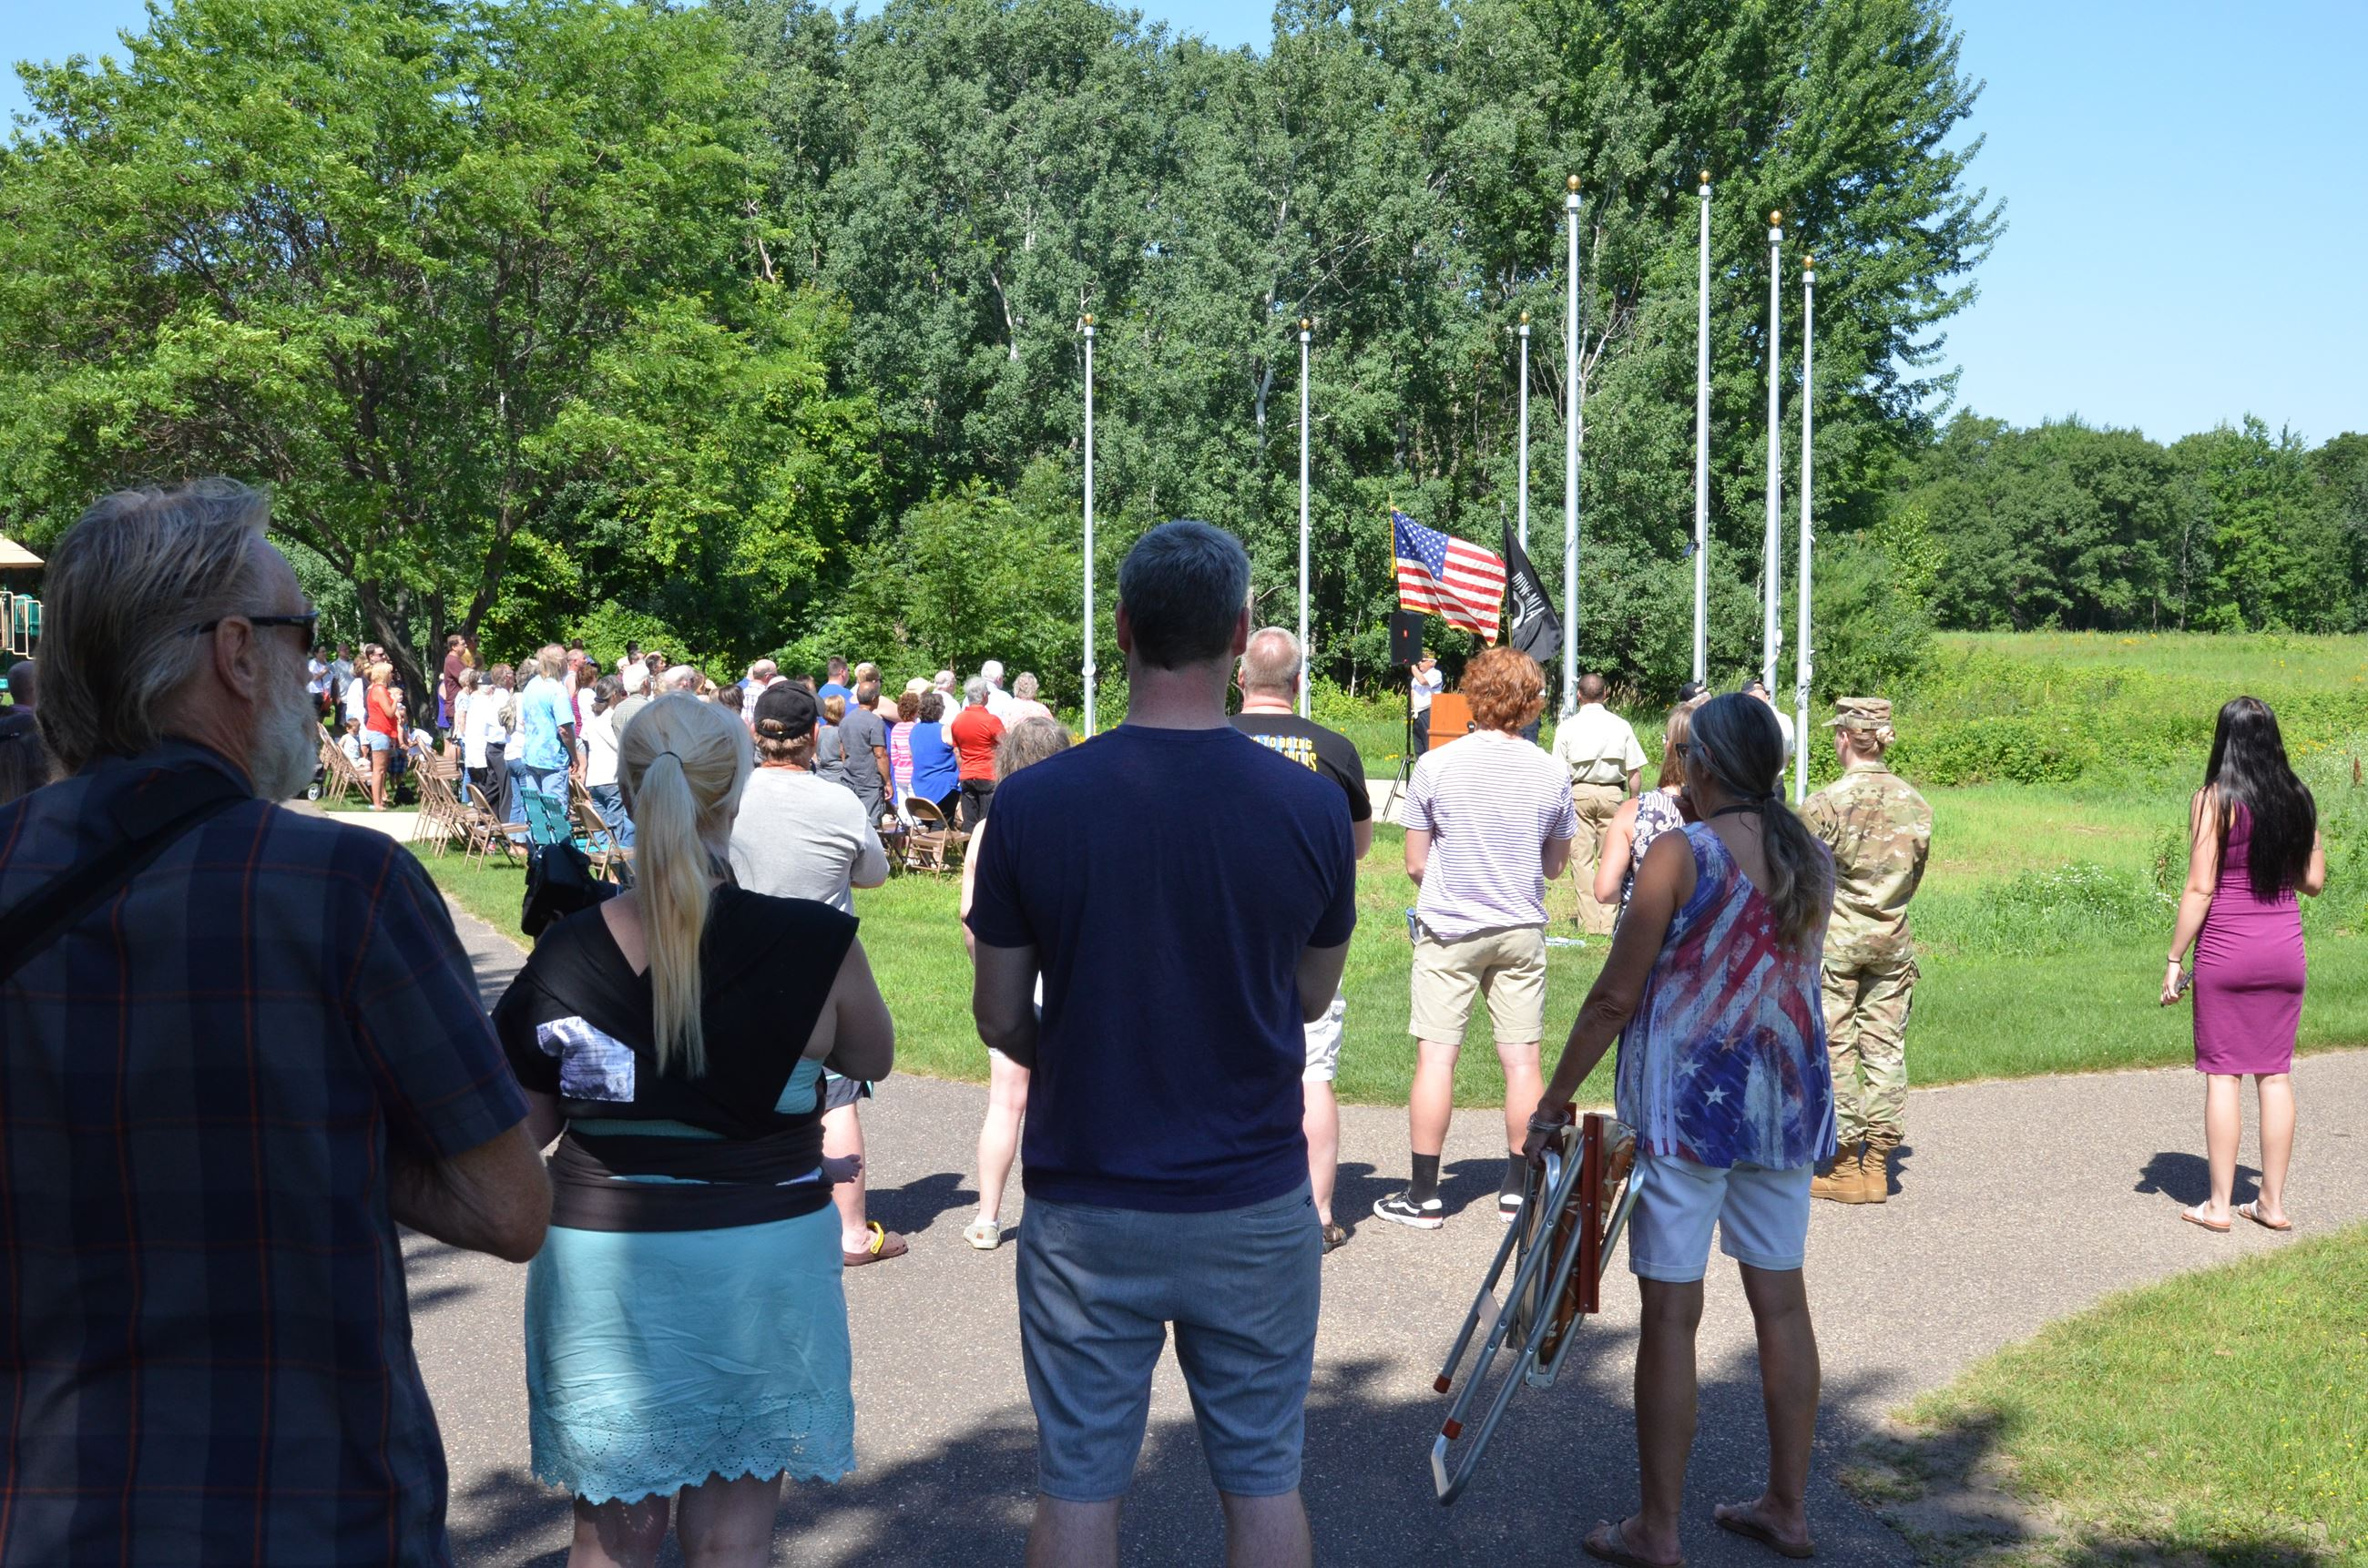 Attendees of the service stand for the flag raising